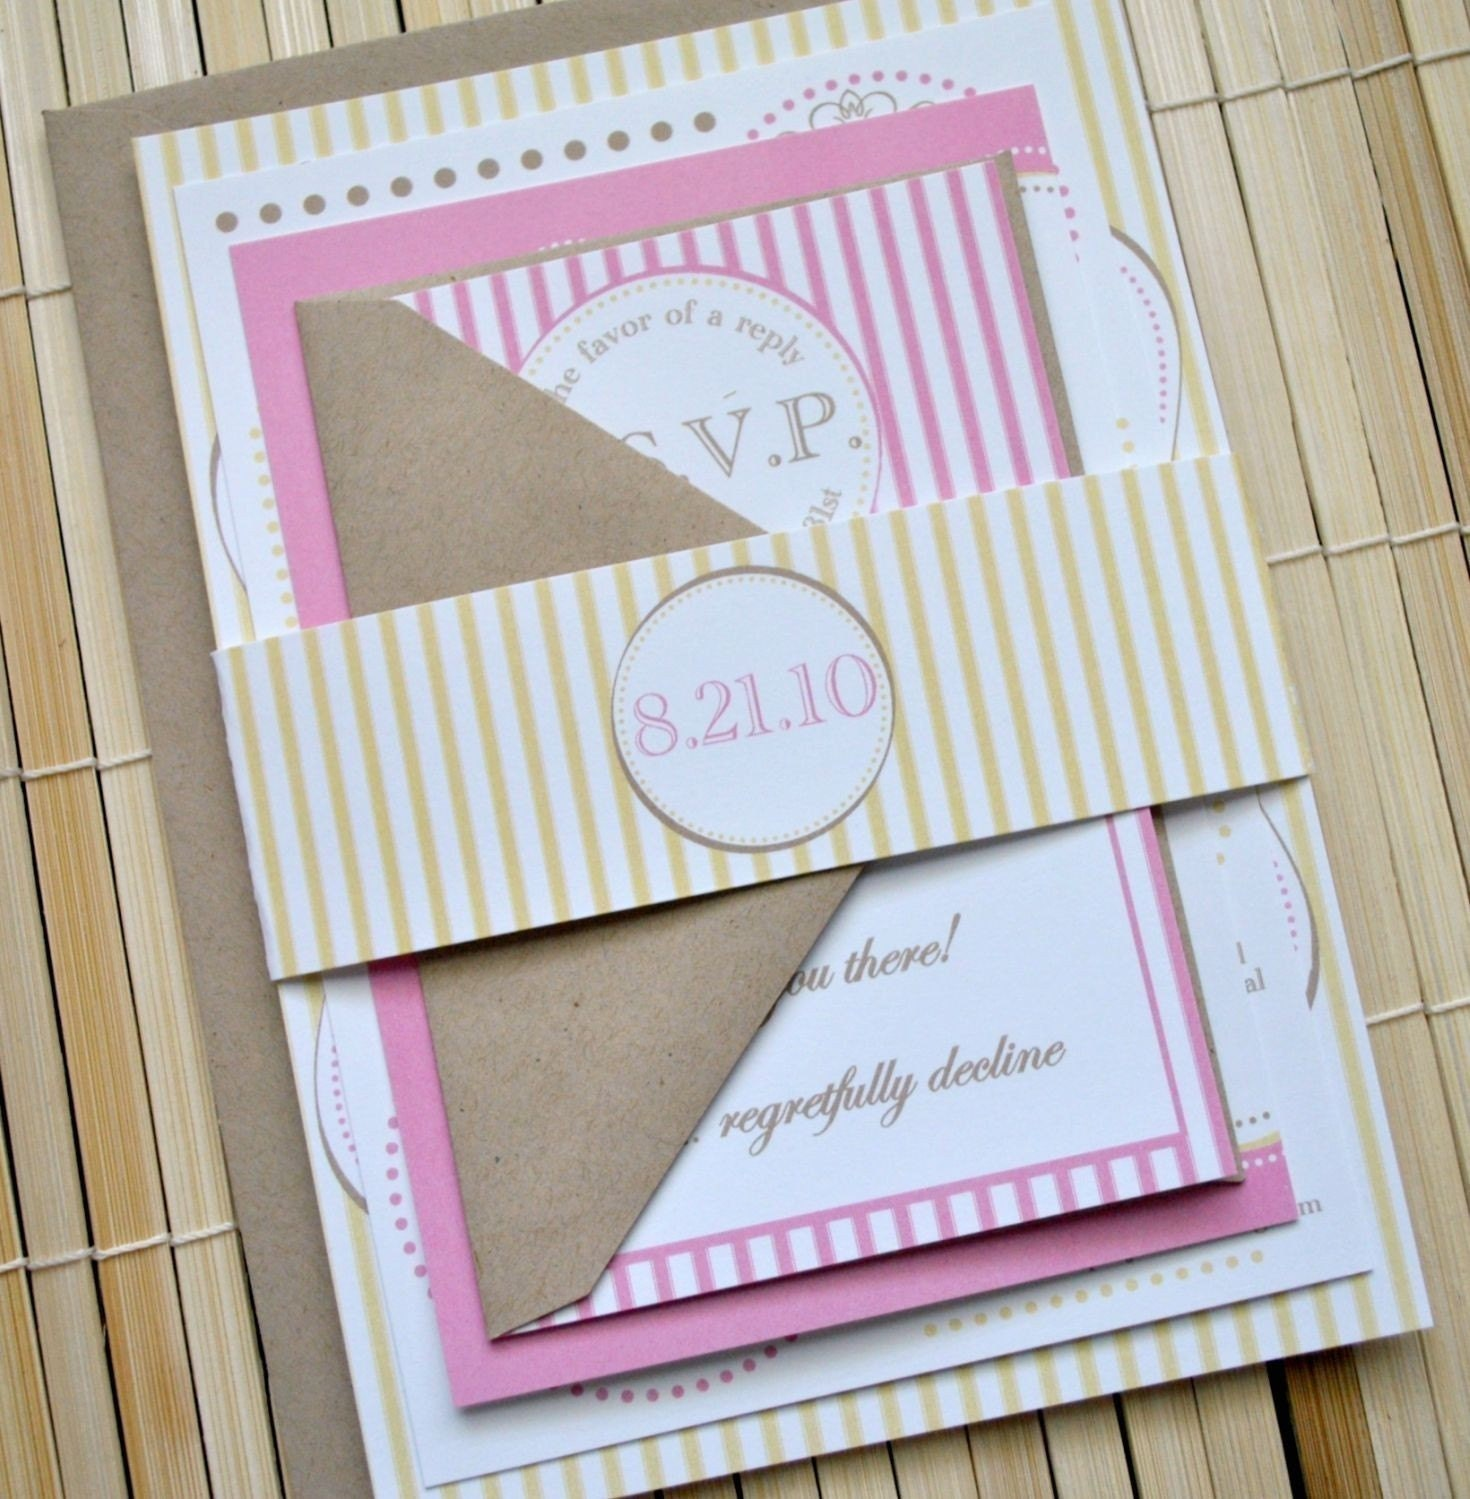 Wedding Invitation Belly Band is one of our best ideas you might choose for invitation design